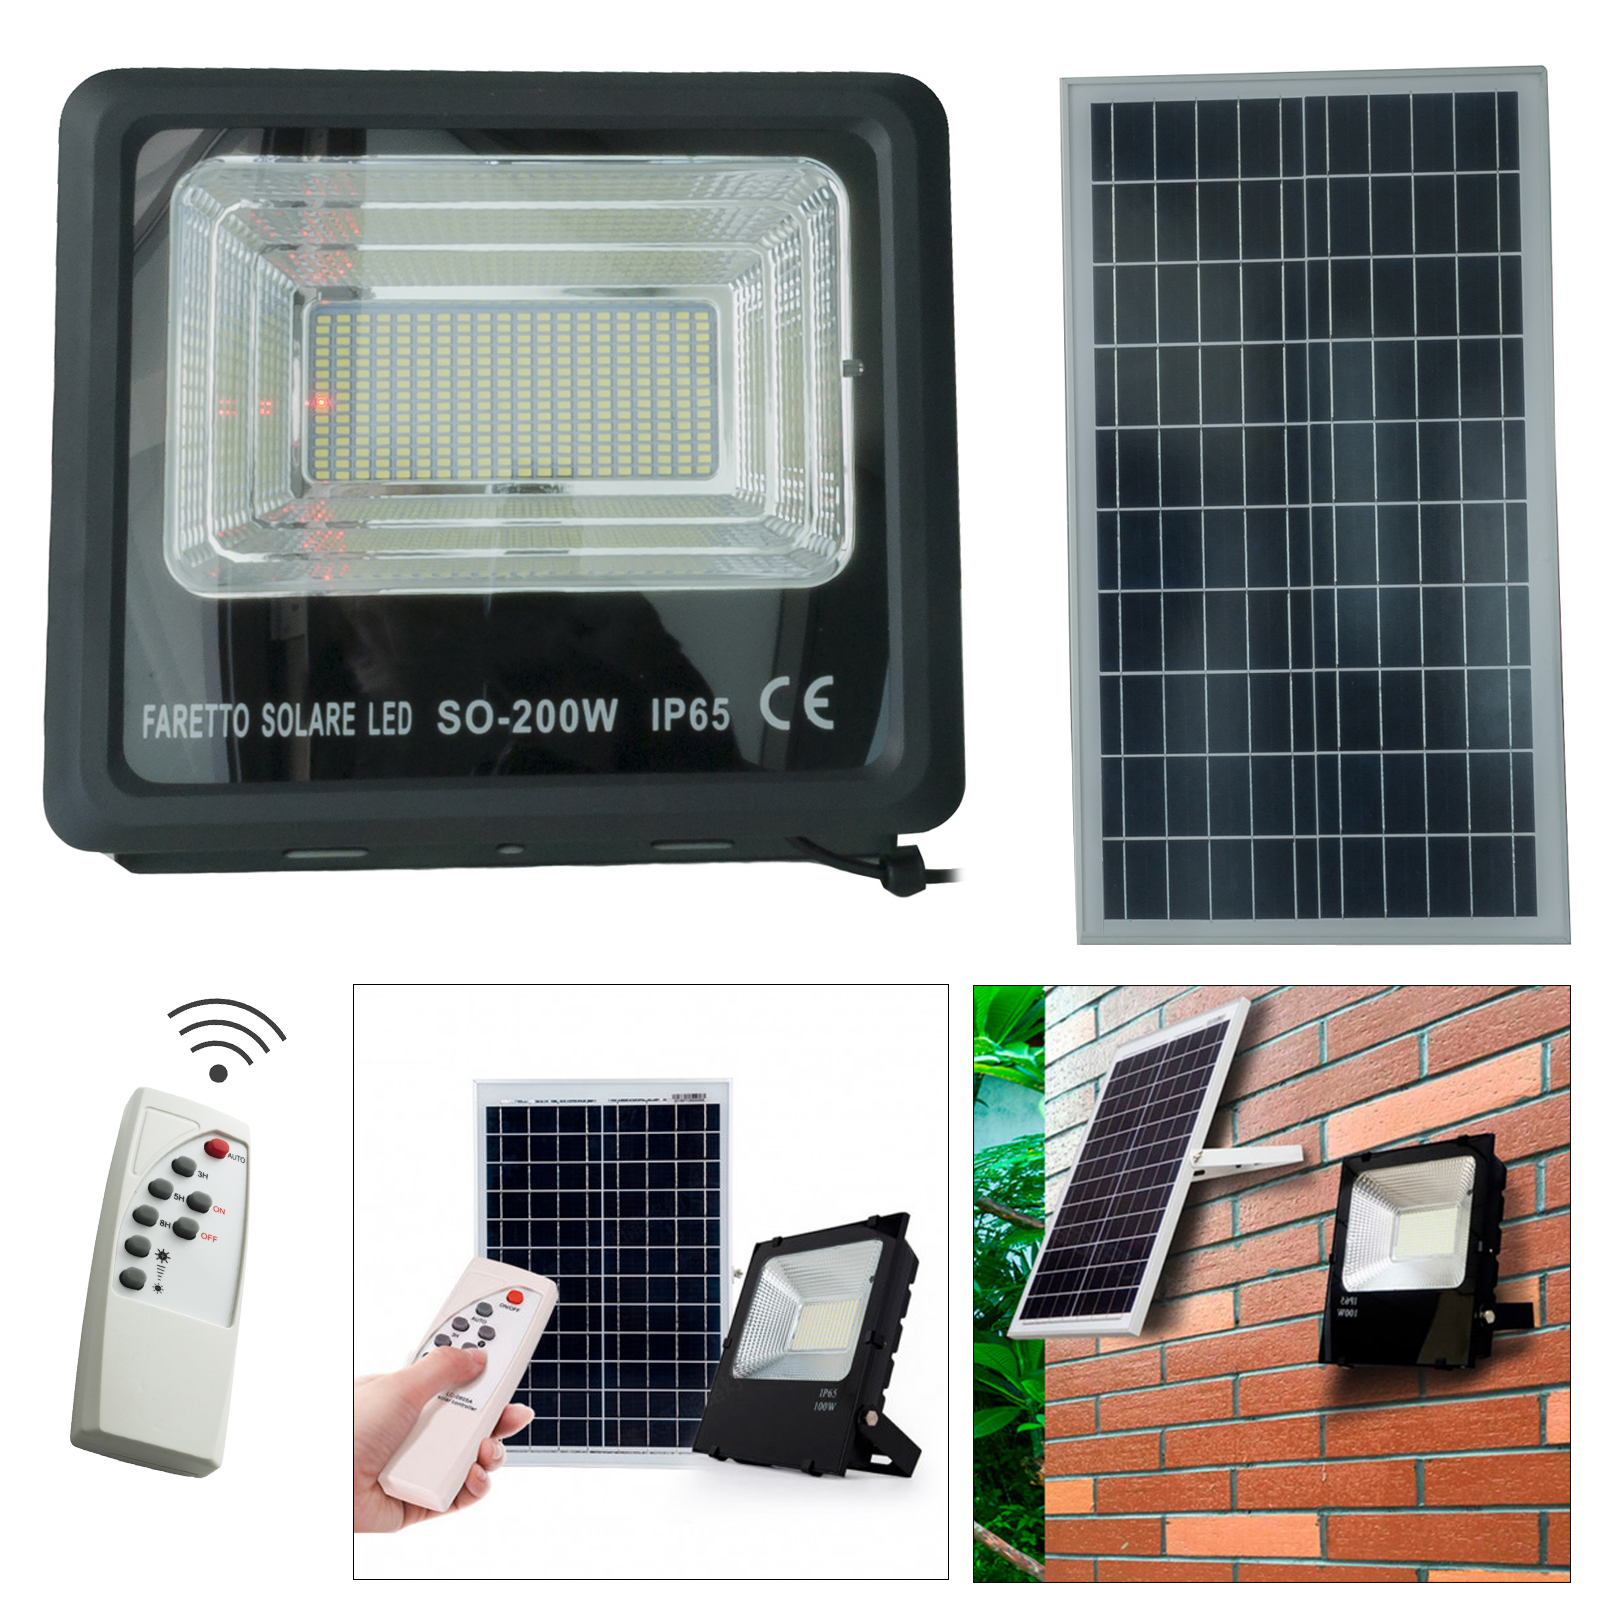 LED floodlight 200W twilight solar panel, battery light, outdoor garden IP65